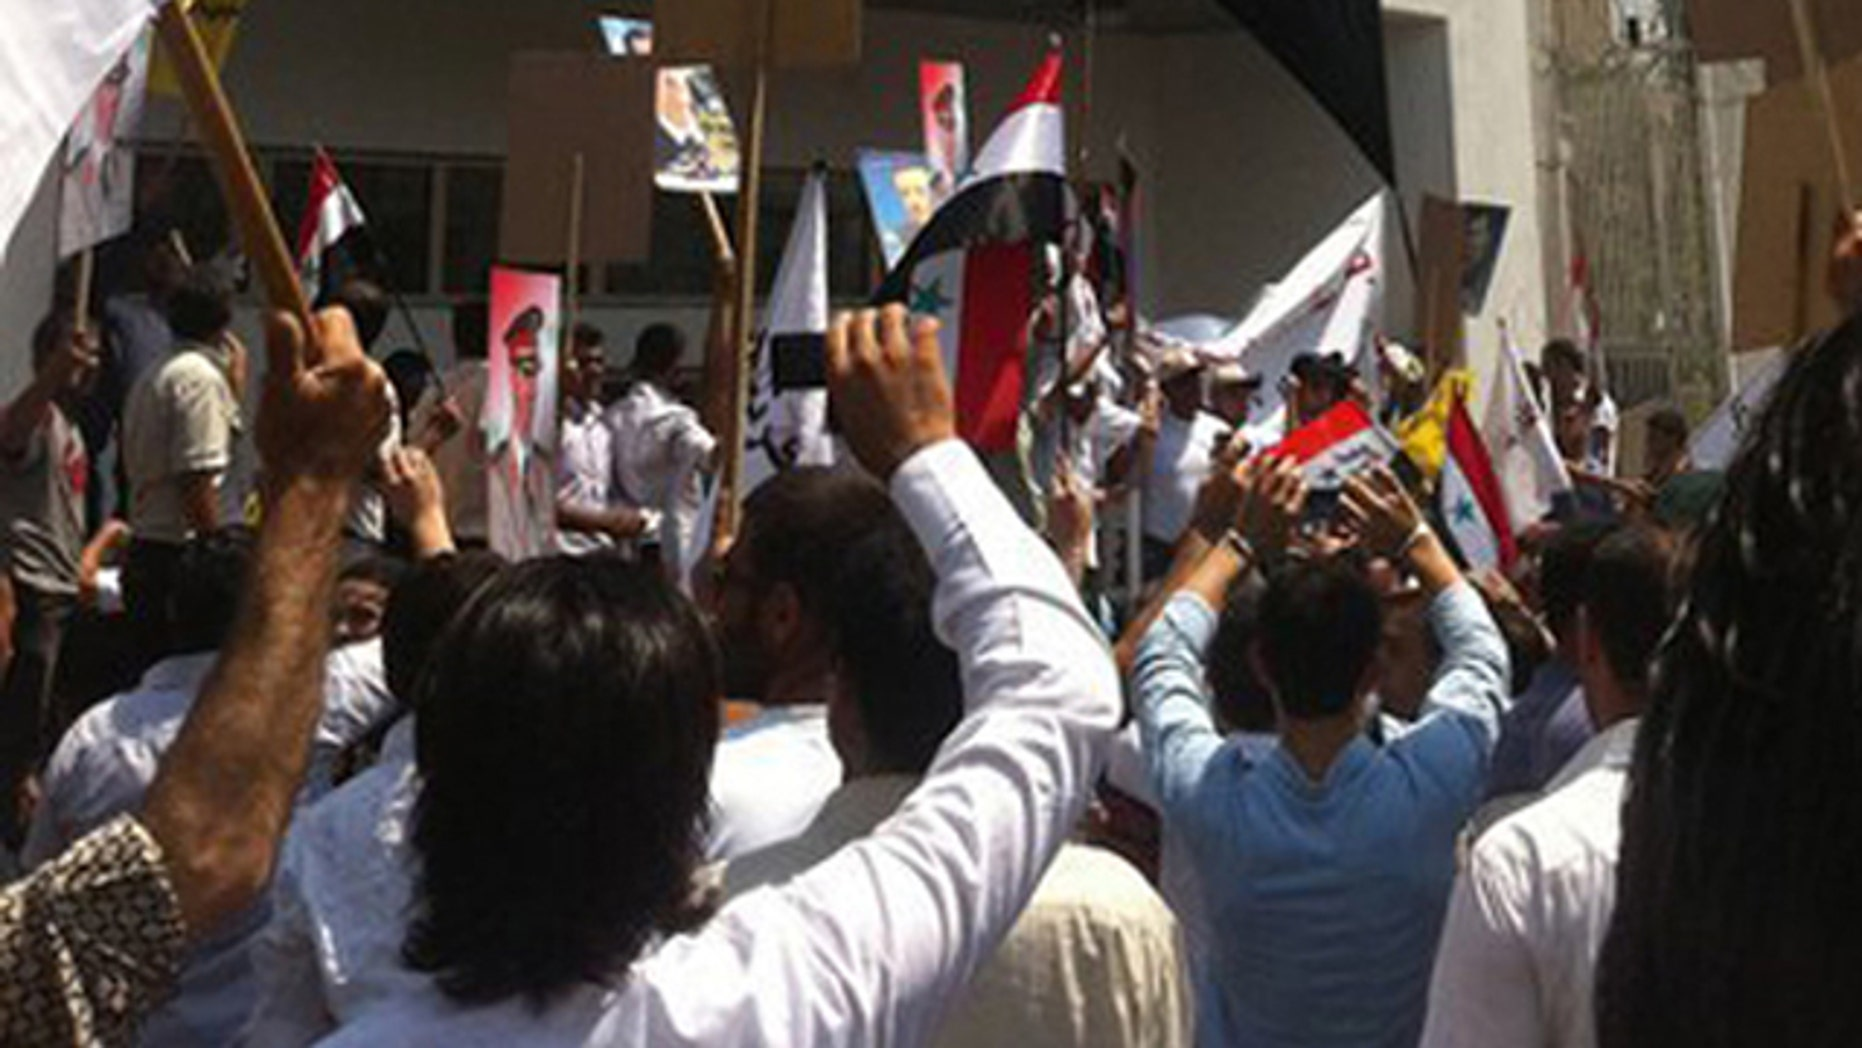 In this photo released by a Syrian news website Shukumaku, pro-Syrian President Bashar Assad protesters hang a huge Syrian flag at the entrance of the U.S. the embassy compound as they protest against the U.S. Ambassador Robert Ford after his visit to the Syrian city of Hama.